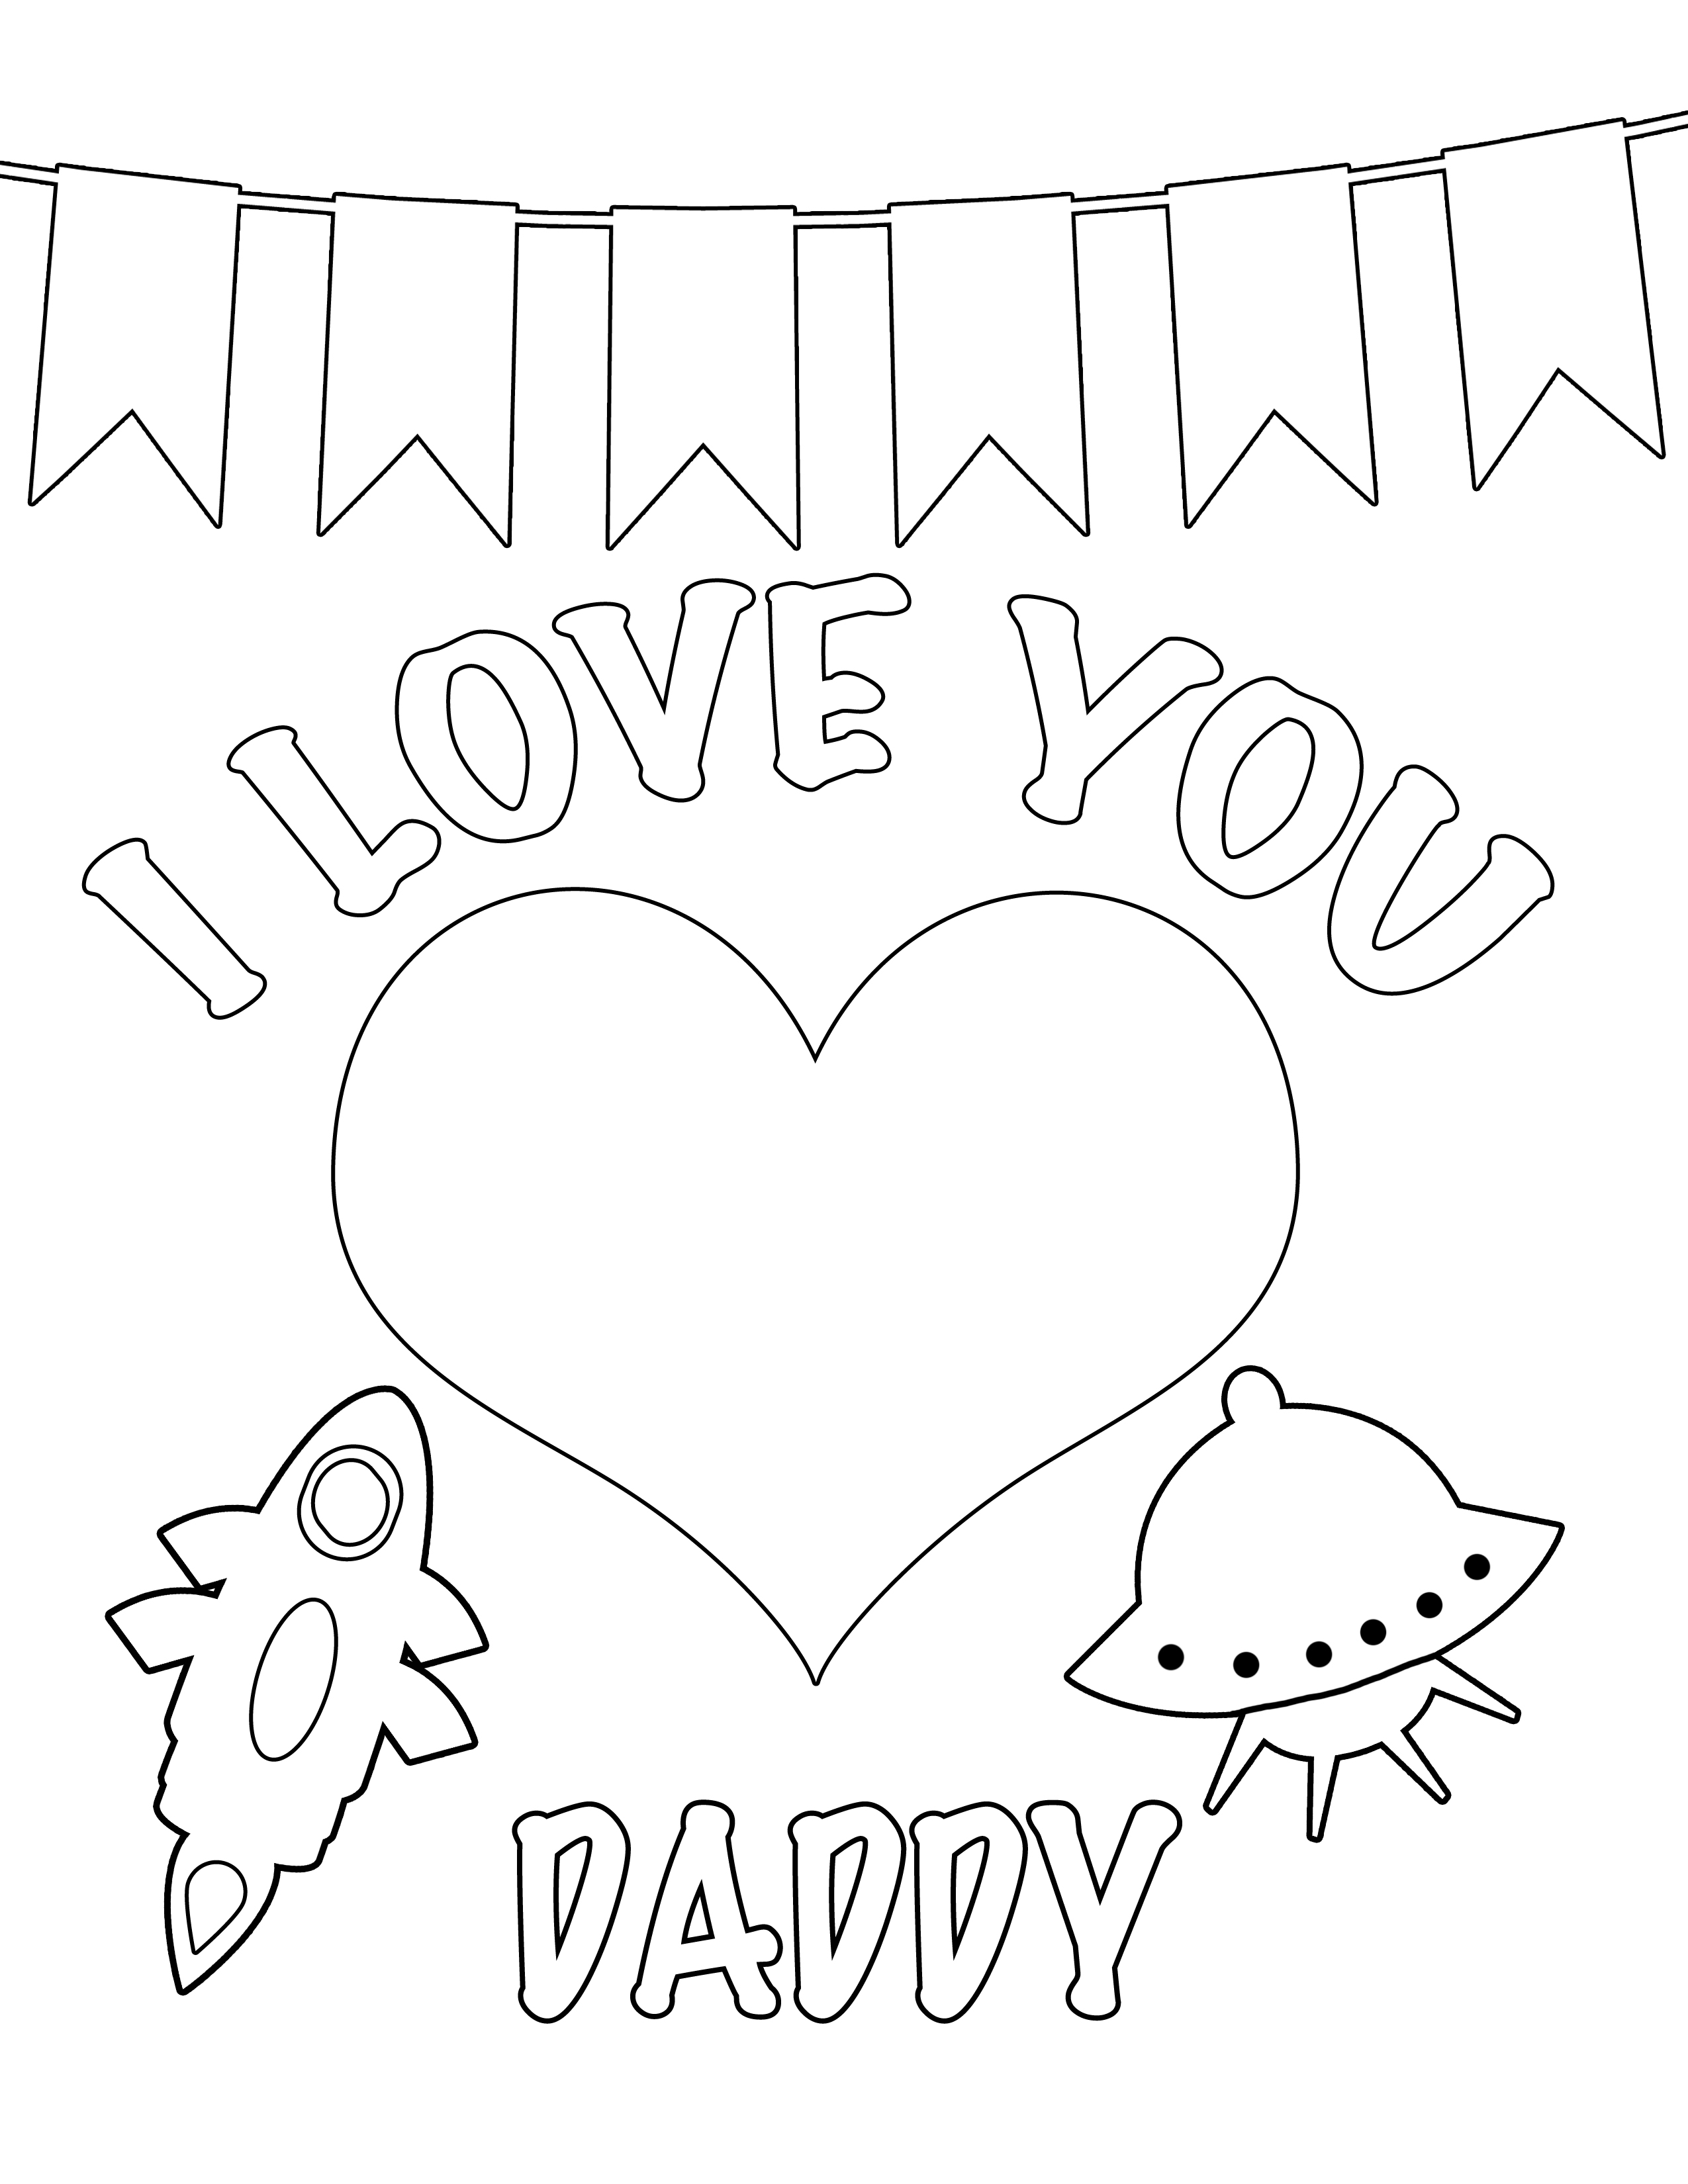 love pictures to color best valentines day coloring pictures printables hug2love love color pictures to